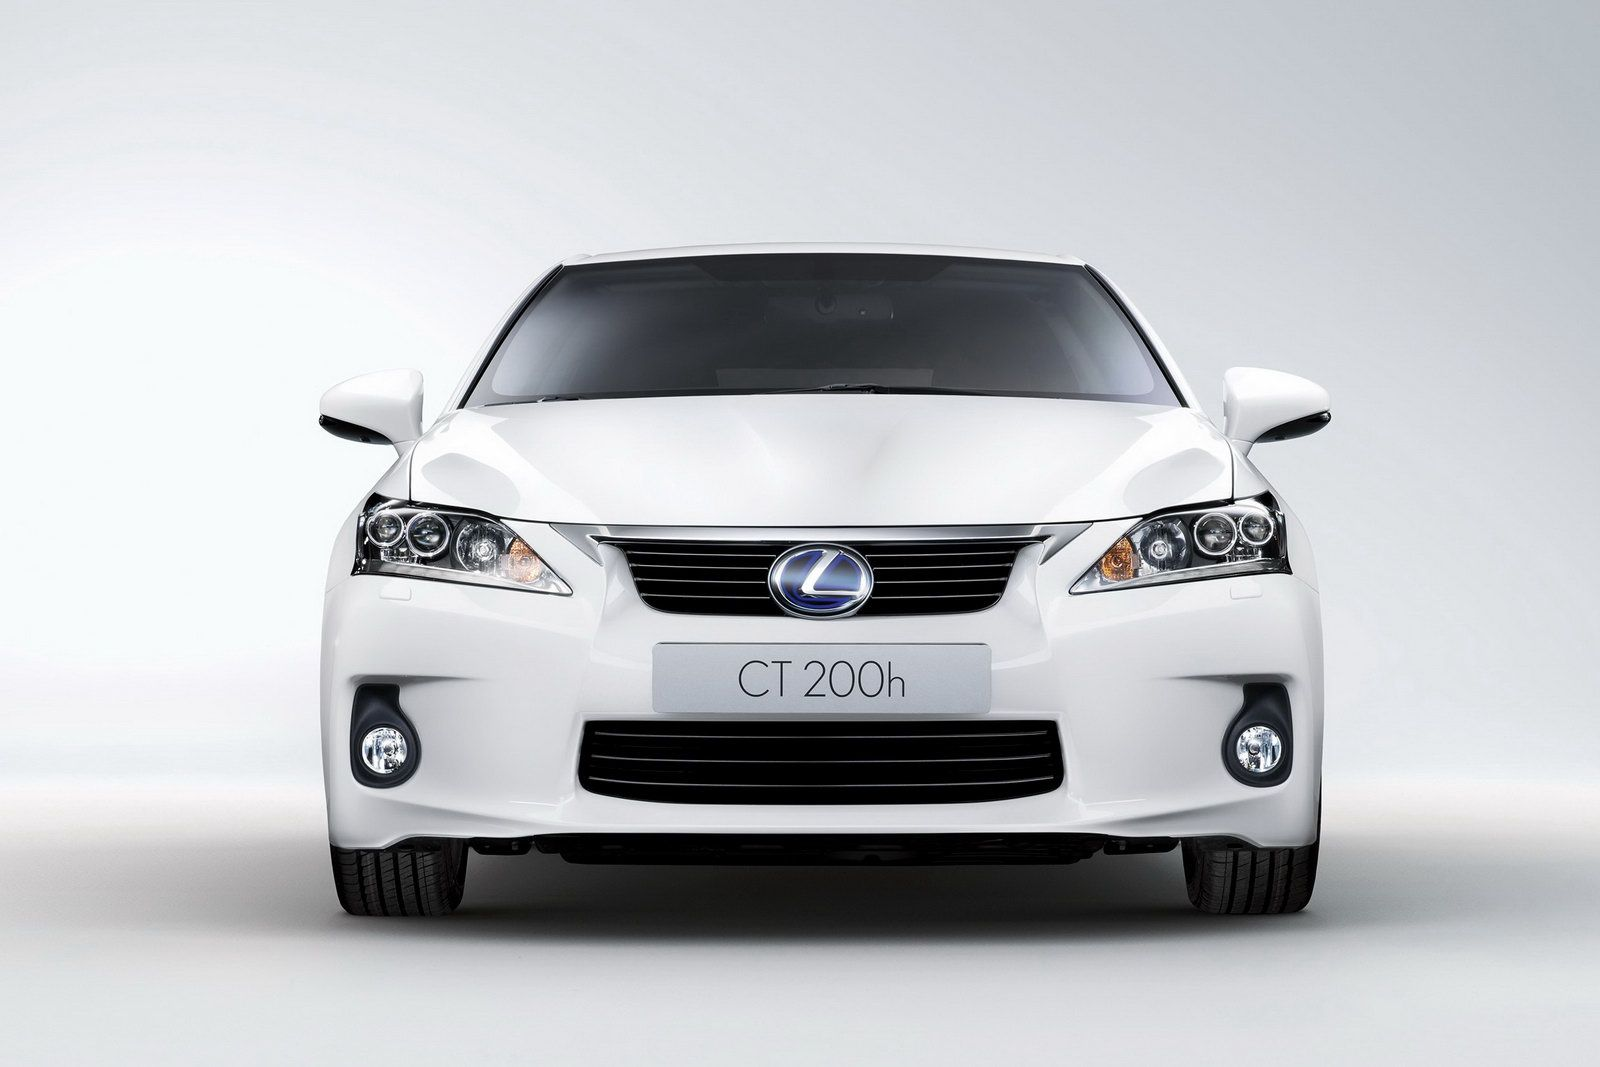 new lexus ct 200h official details and photos leaked it s your auto world new cars auto. Black Bedroom Furniture Sets. Home Design Ideas